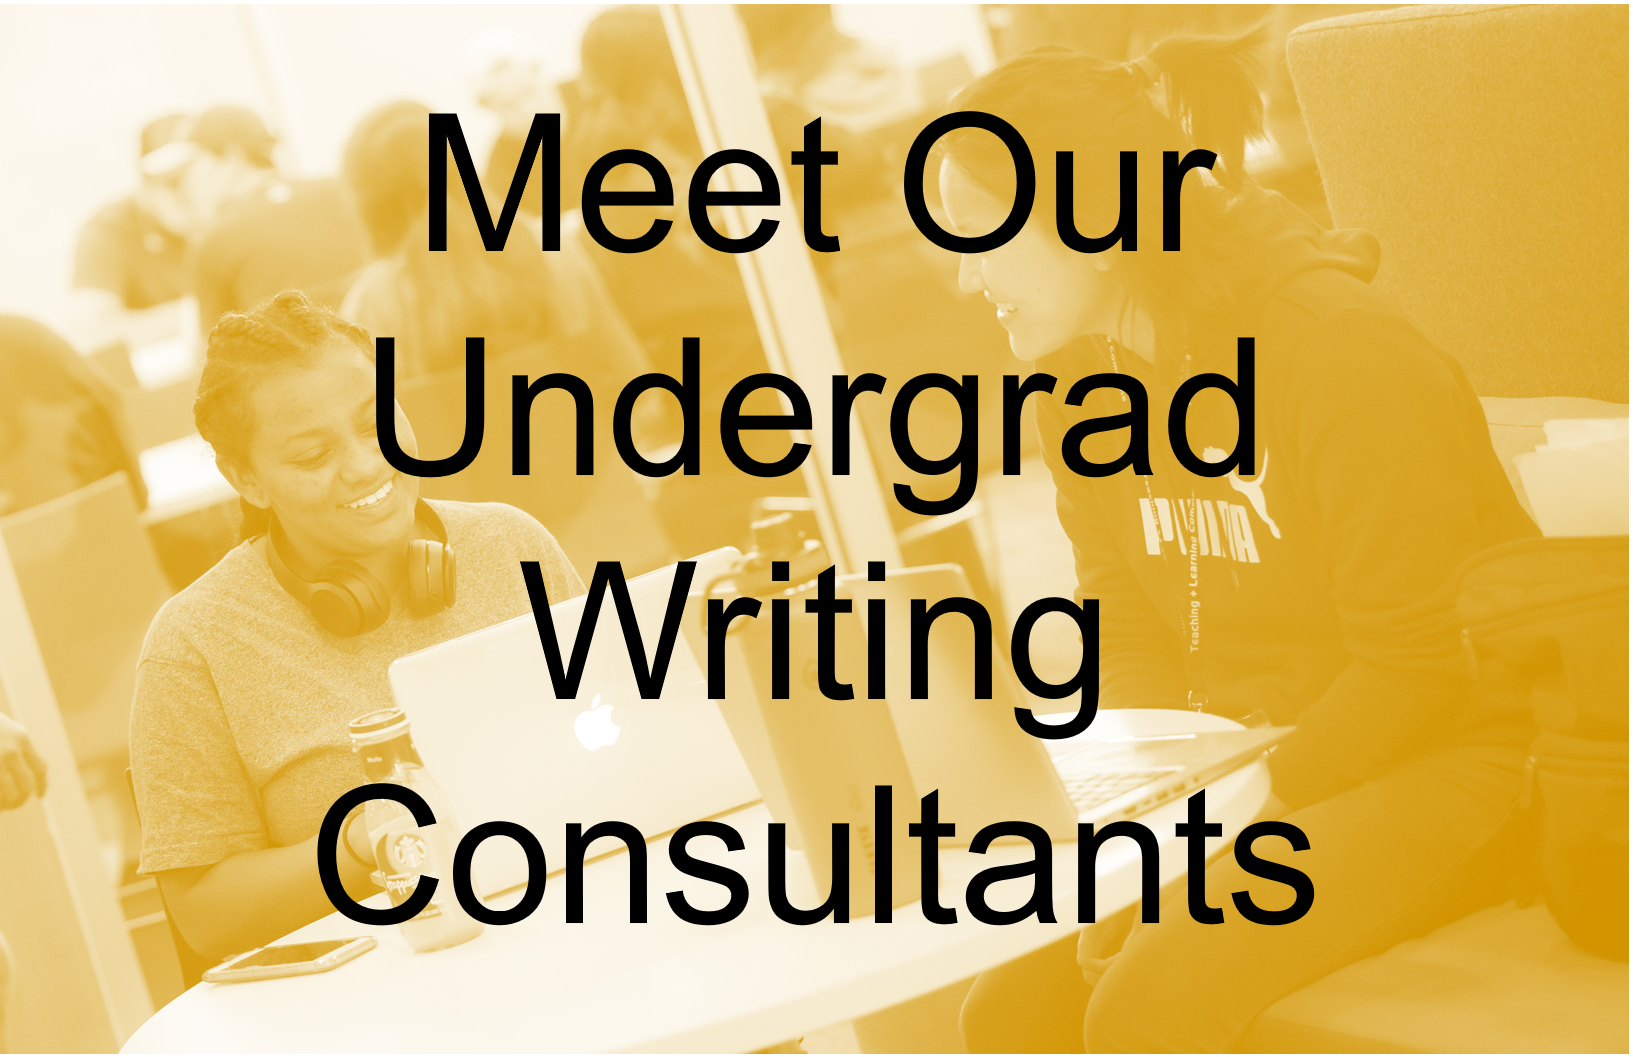 """Meet Our Undergrad Writing Consultants"" textbox on yellow background"